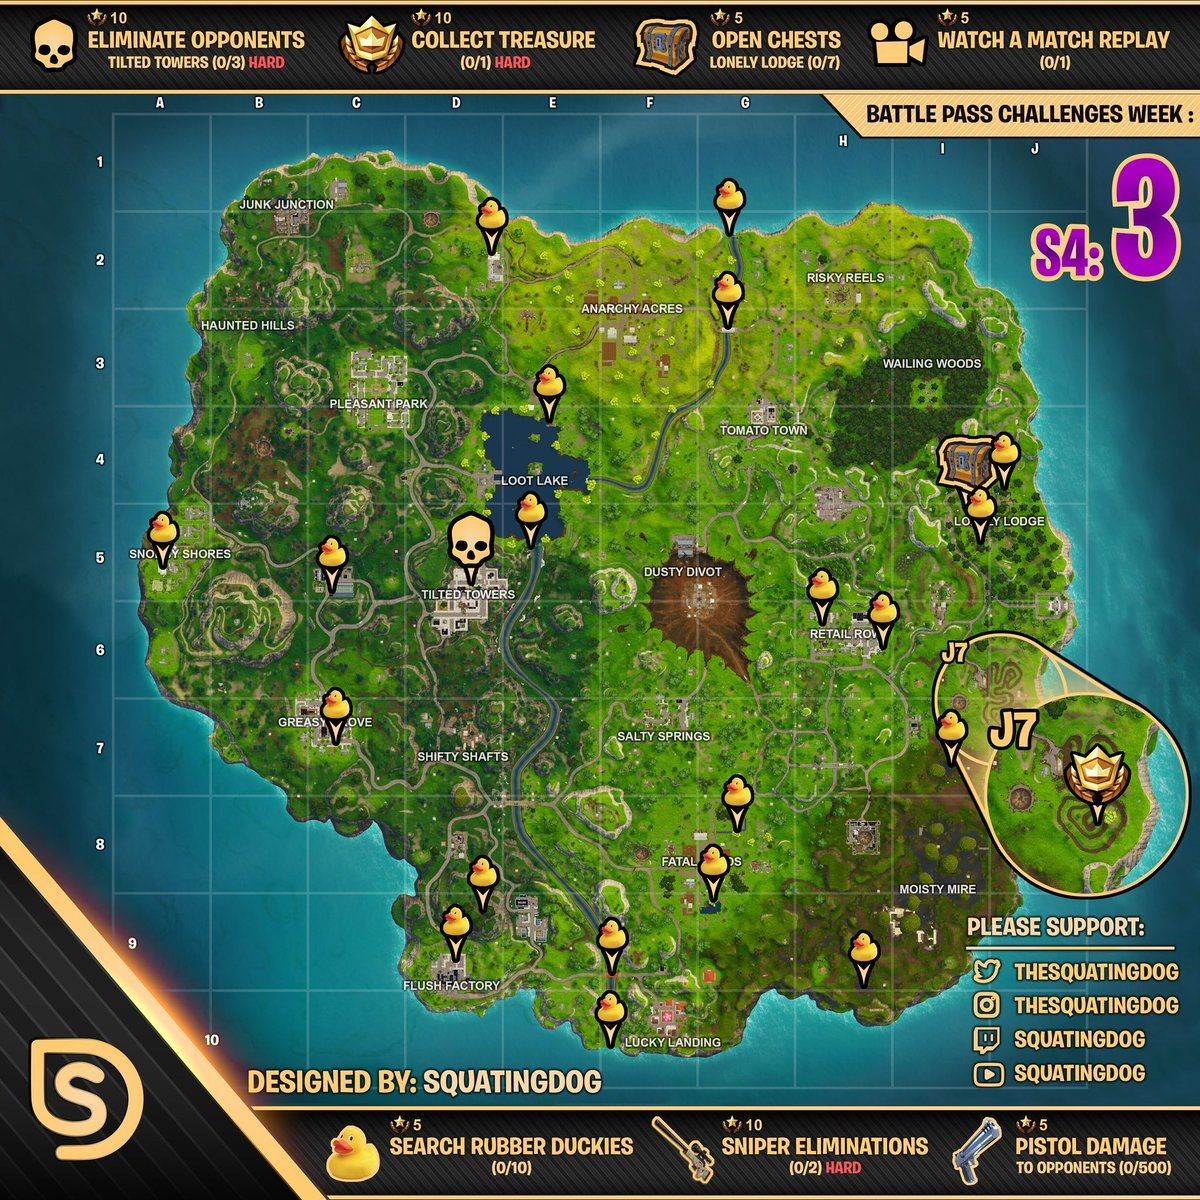 Cheat Sheet For Fortnite Battle Royale Season 4 Week 3 Fortnite